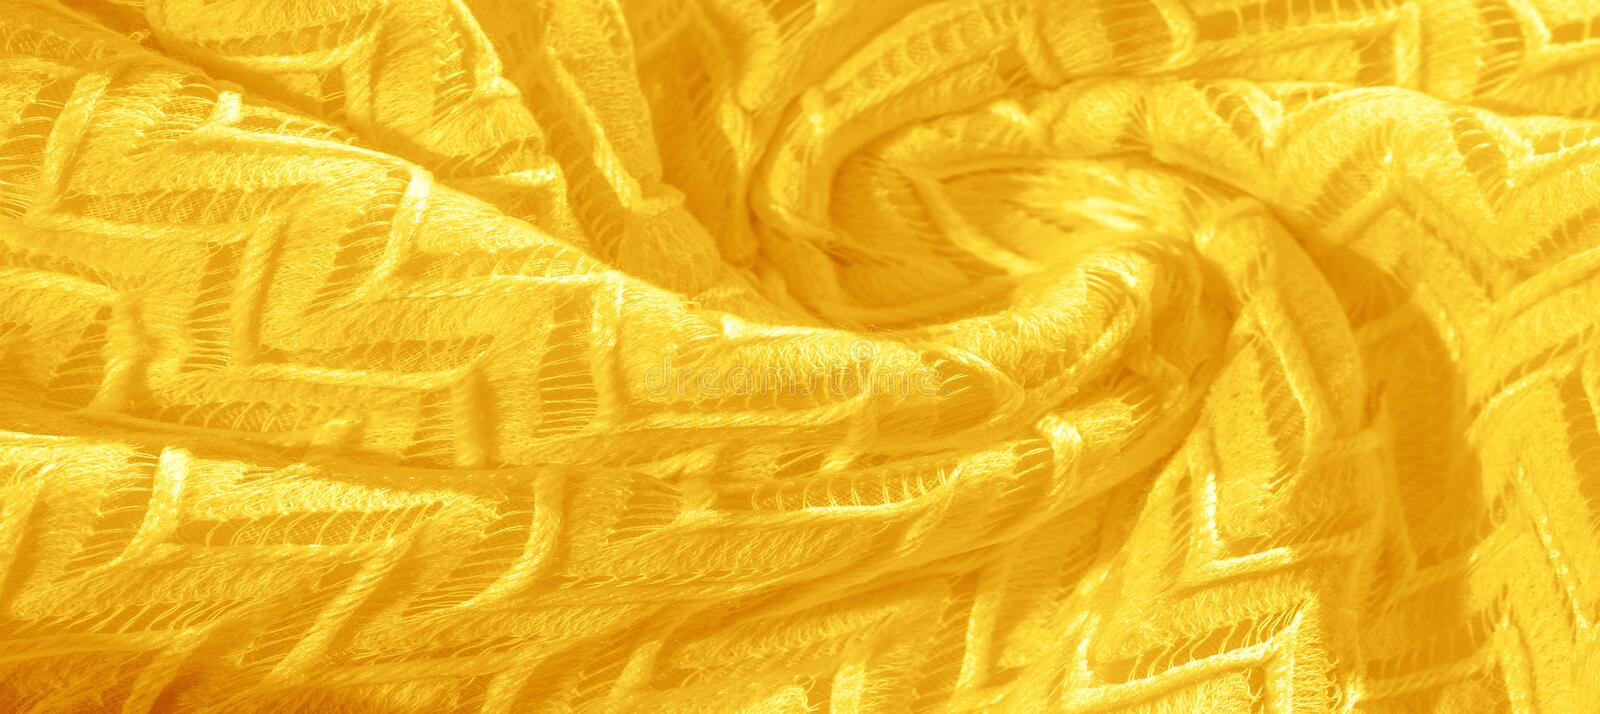 Texture, background, pattern, silk fabric, yellow, layered lace tulle, premium plain winter diamond knitted scarf in the form of. Infinity loops royalty free stock photography